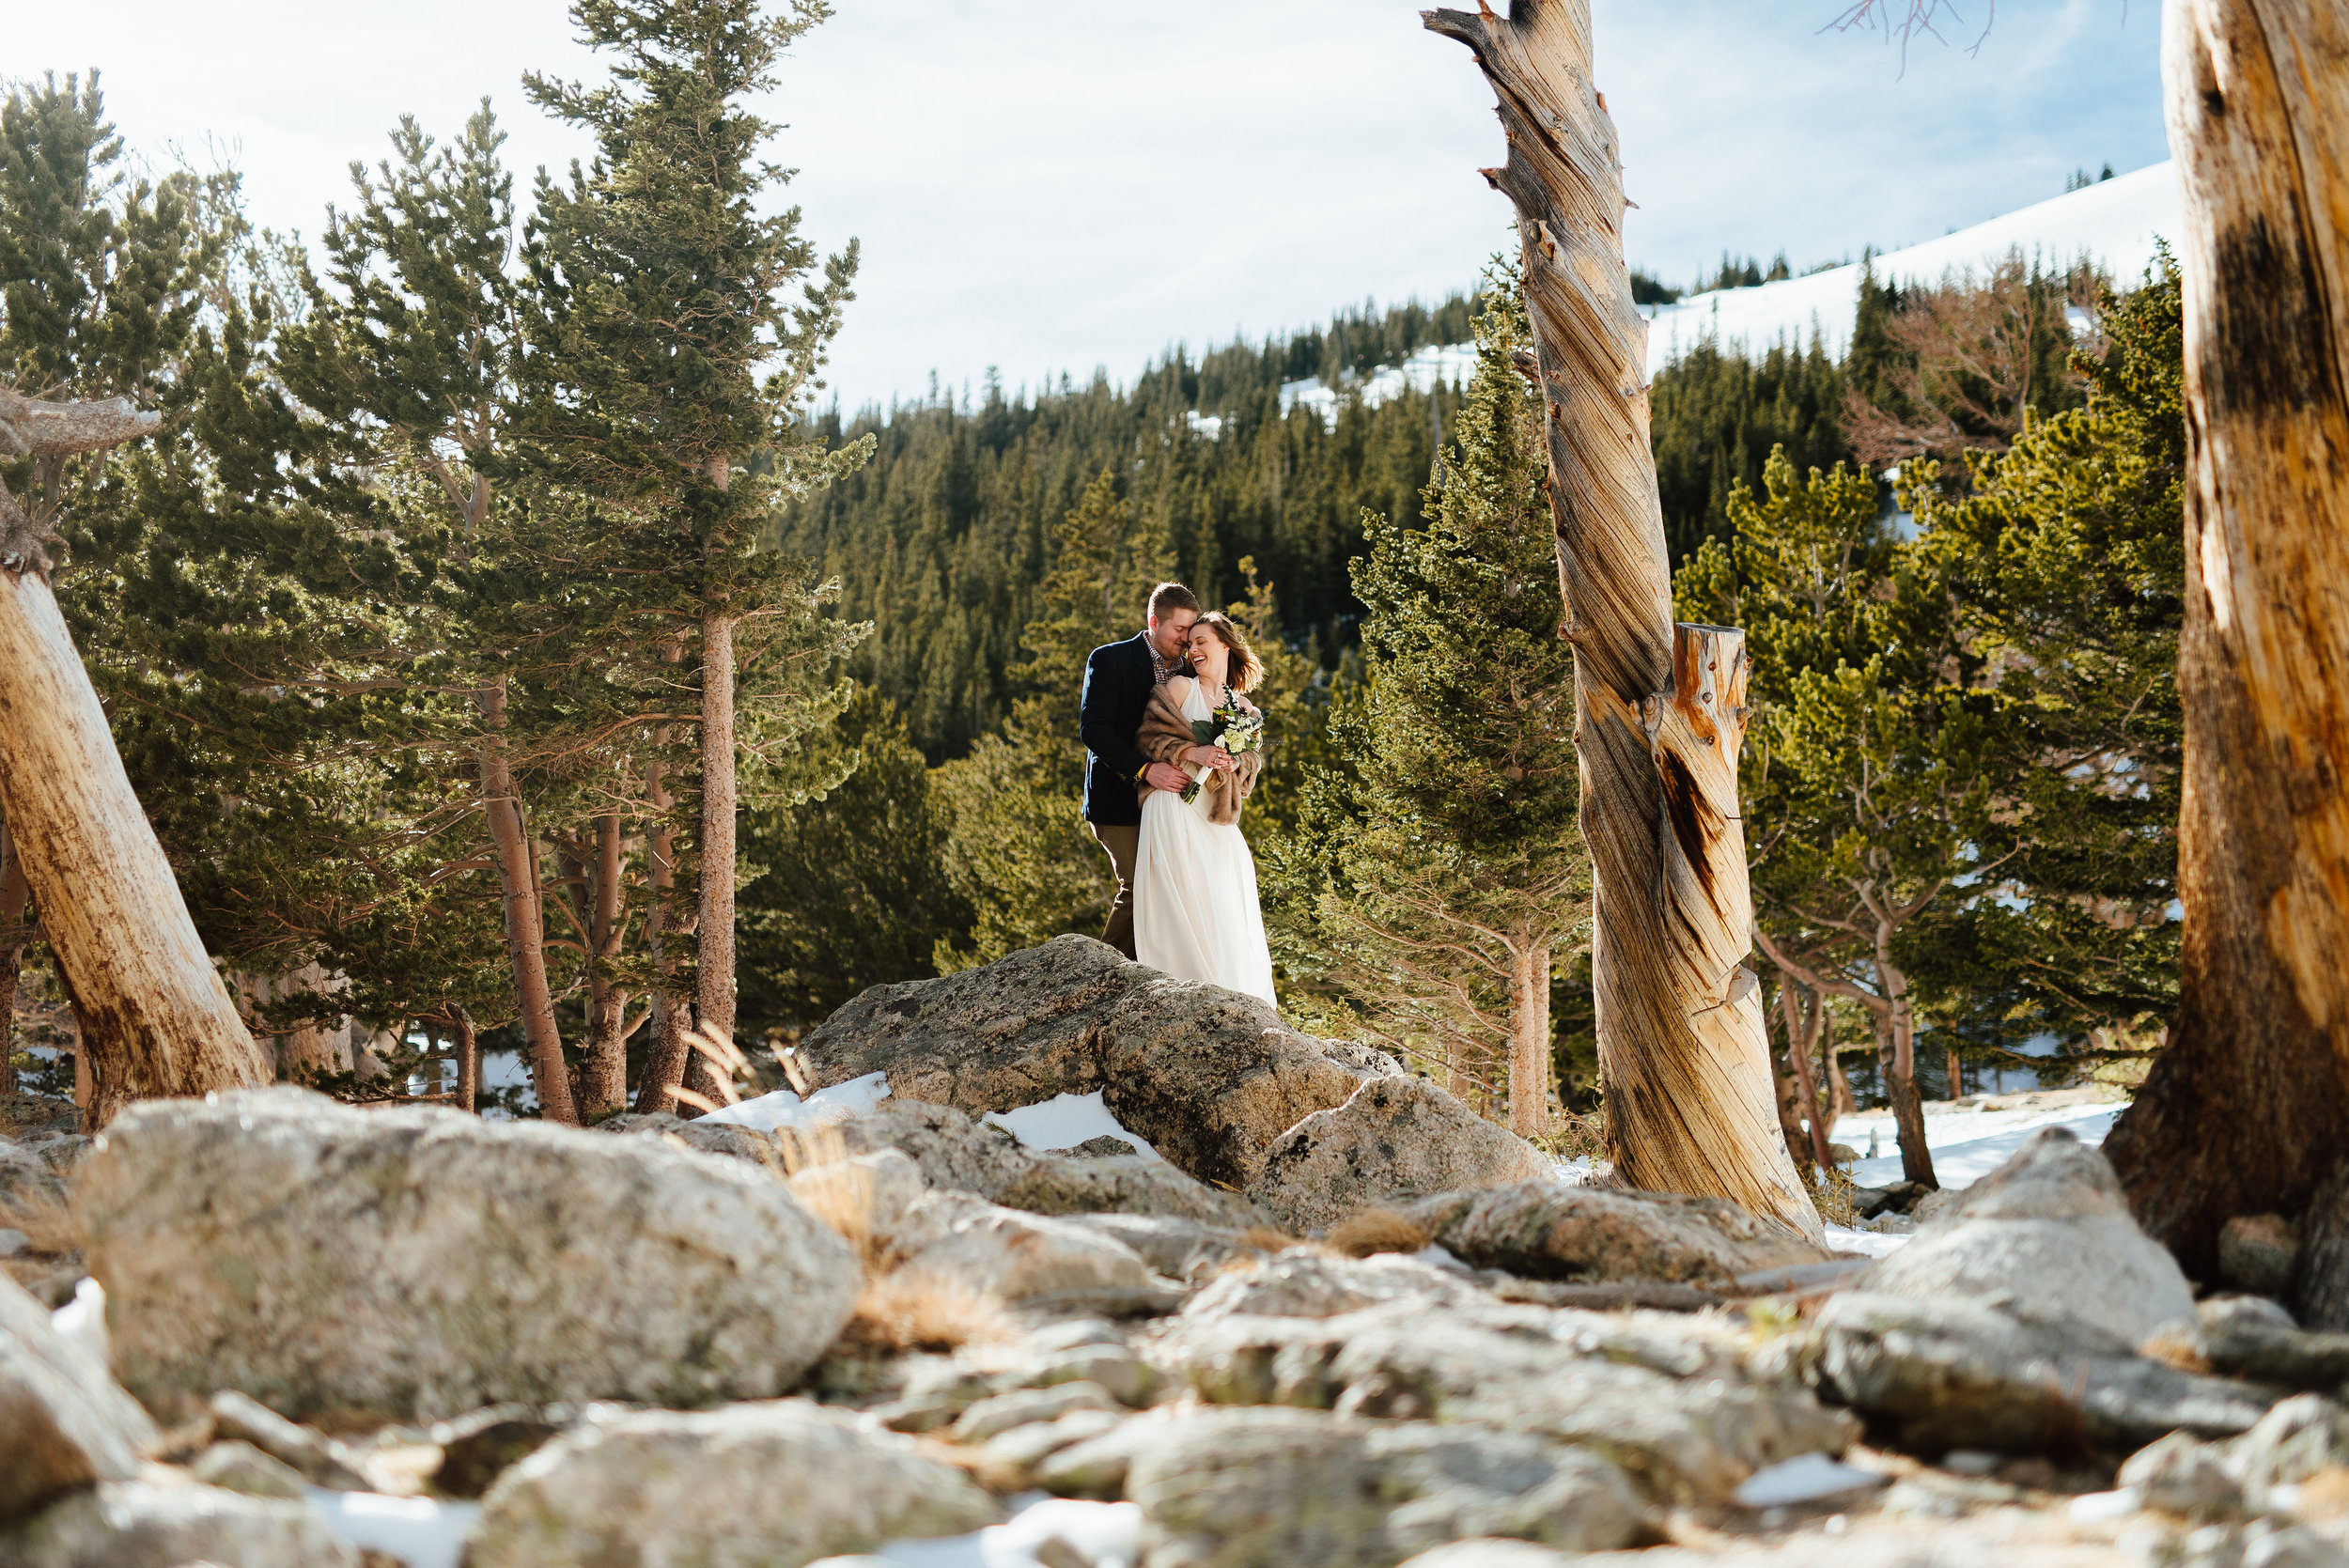 Such an intimate moment between this bride and groom captured in Idaho Springs, Colorado. I love the way this couple is nestled in the whimsical trees of the Rocky Mountains. |Mountain elopement photos by adventure wedding photographer, Maddie Mae.